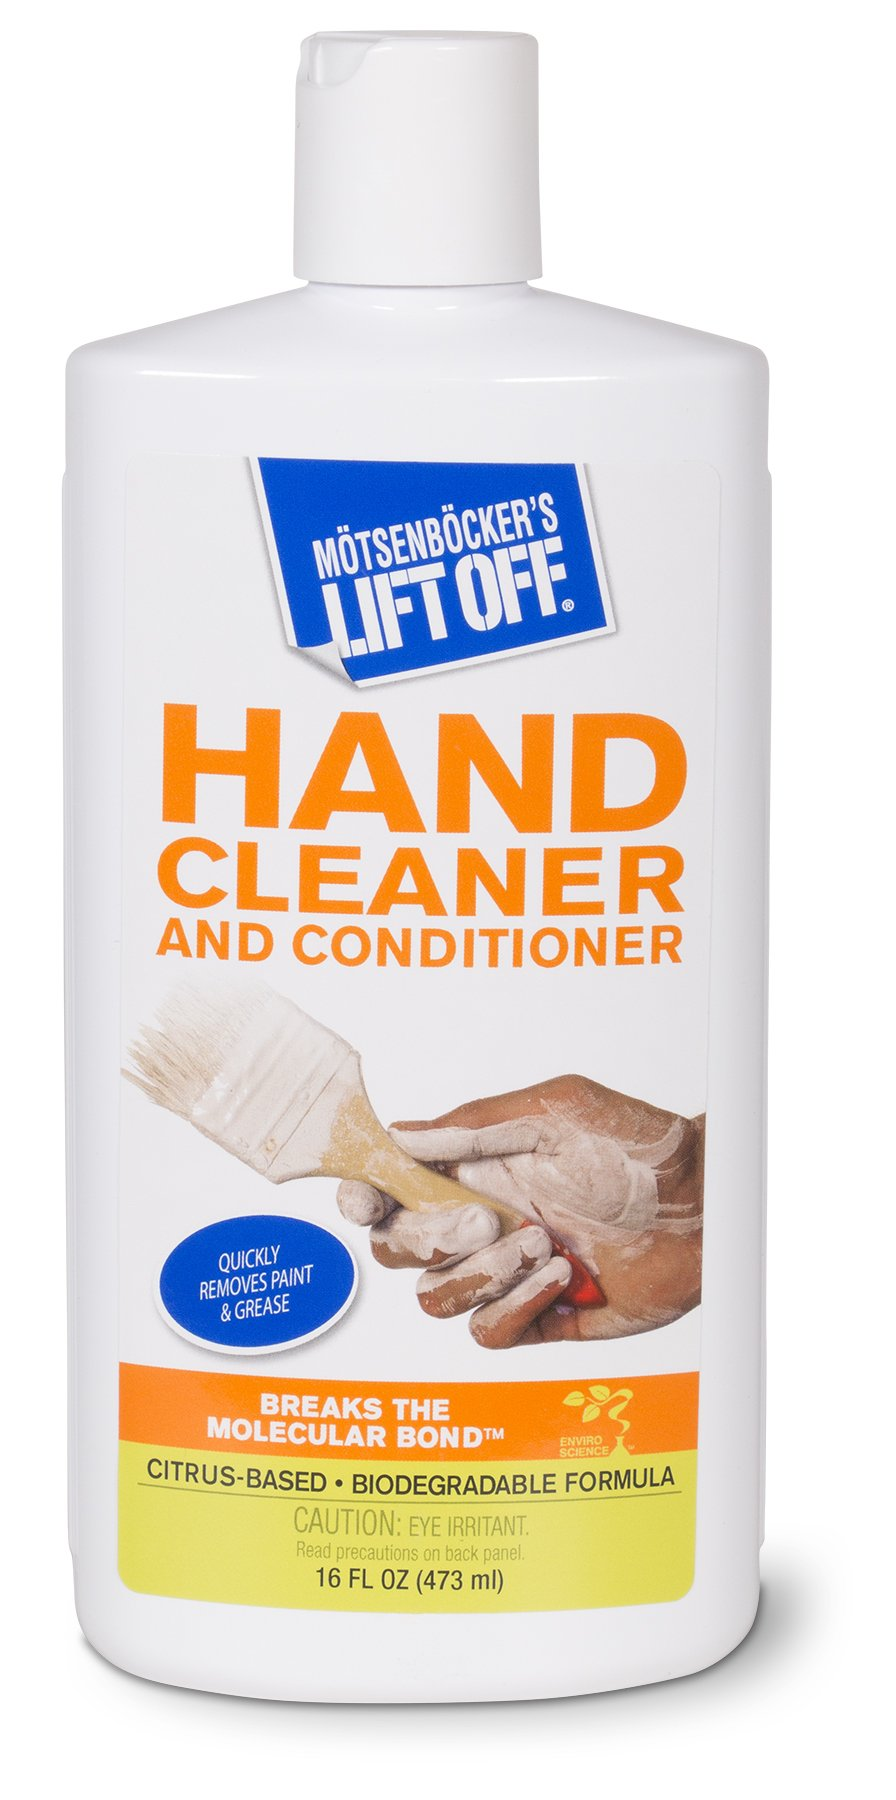 Motsenbocker's Lift Off 41916 Hand Cleaner and Conditioner 16-Ounce Bottle-Pack of 1, Fluid